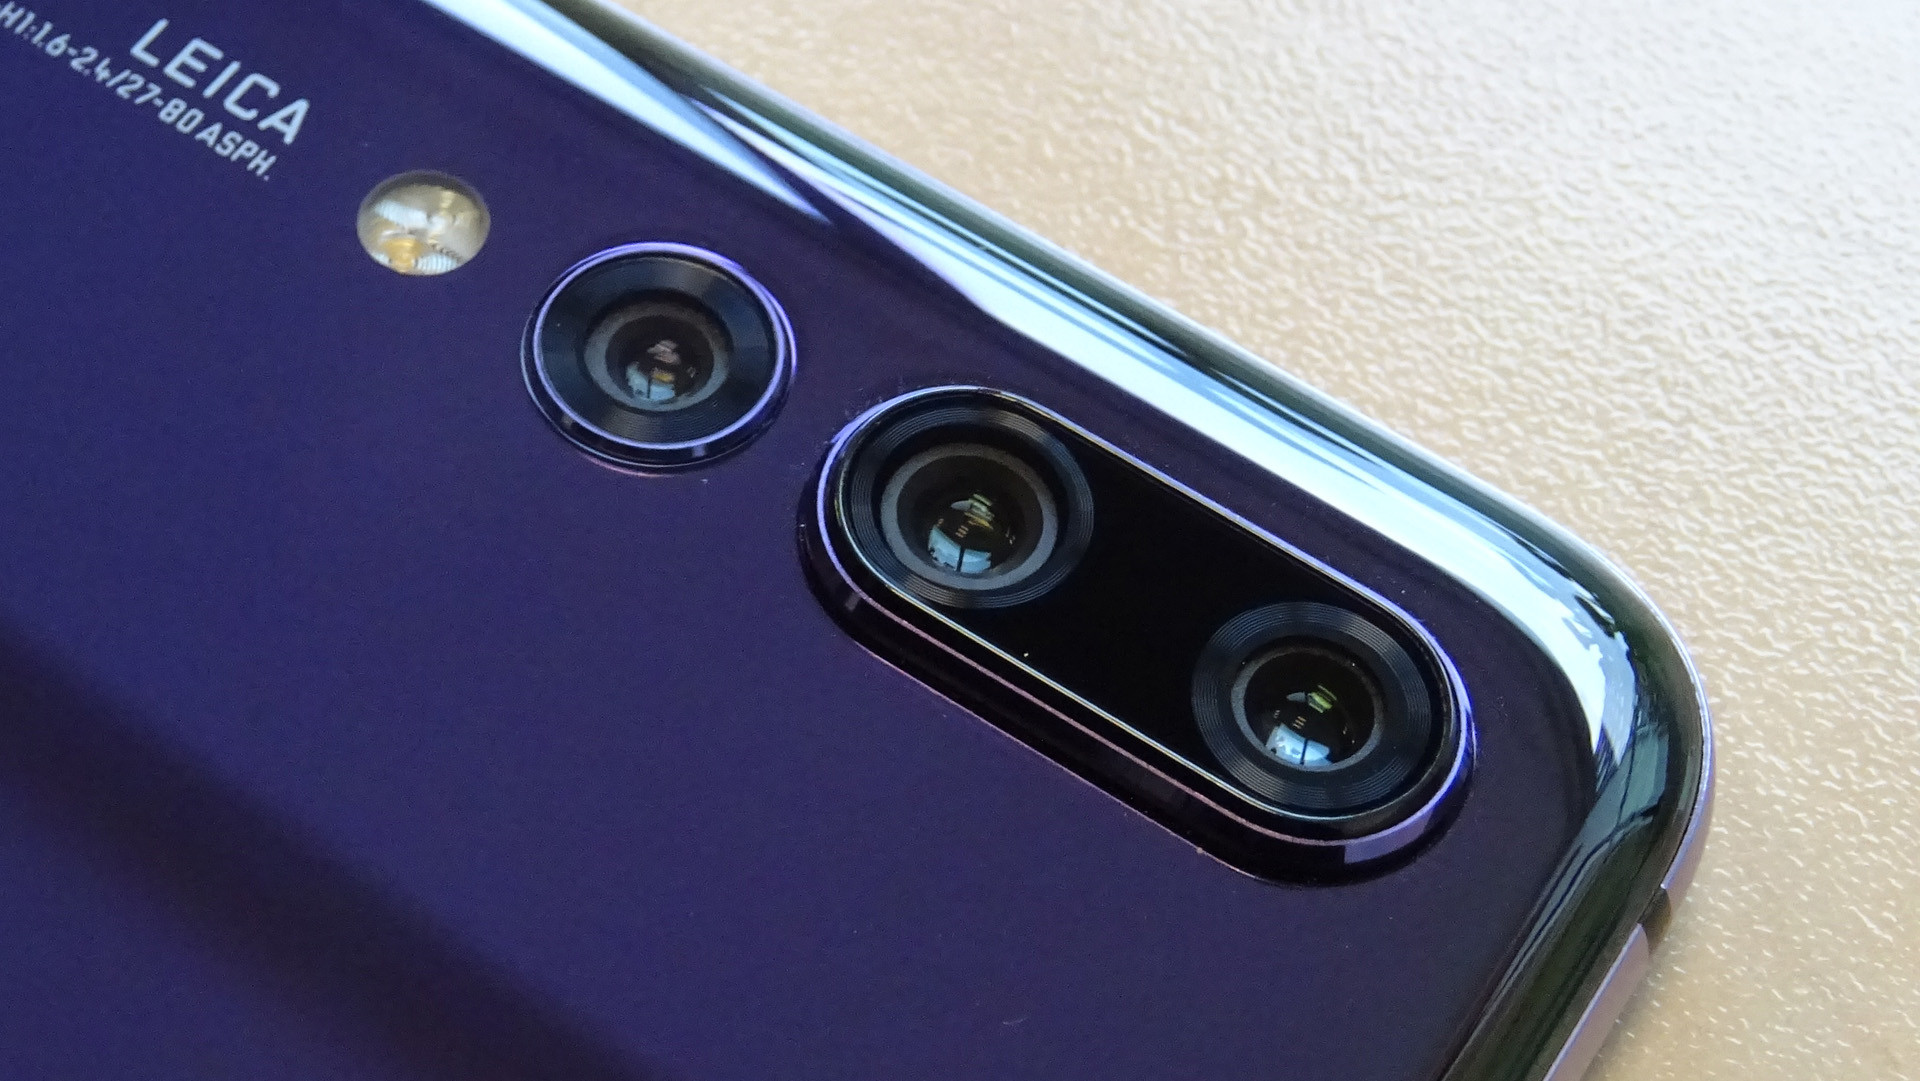 Huawei P20 and P20 Pro With Triple Camera and AI launched